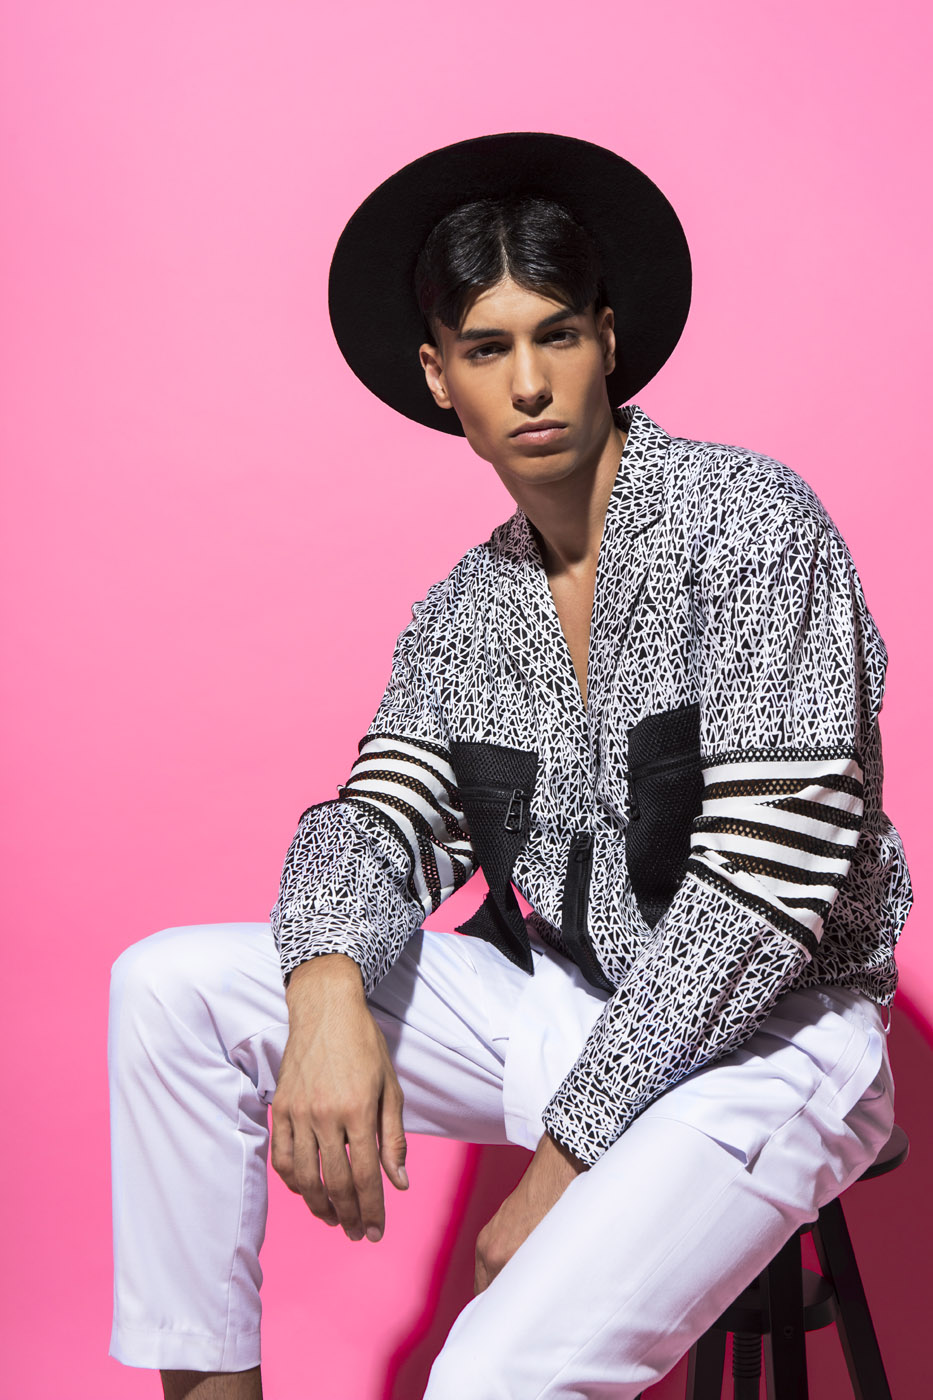 Anton by Phoebe Cheong for CHASSEUR MAGAZINE